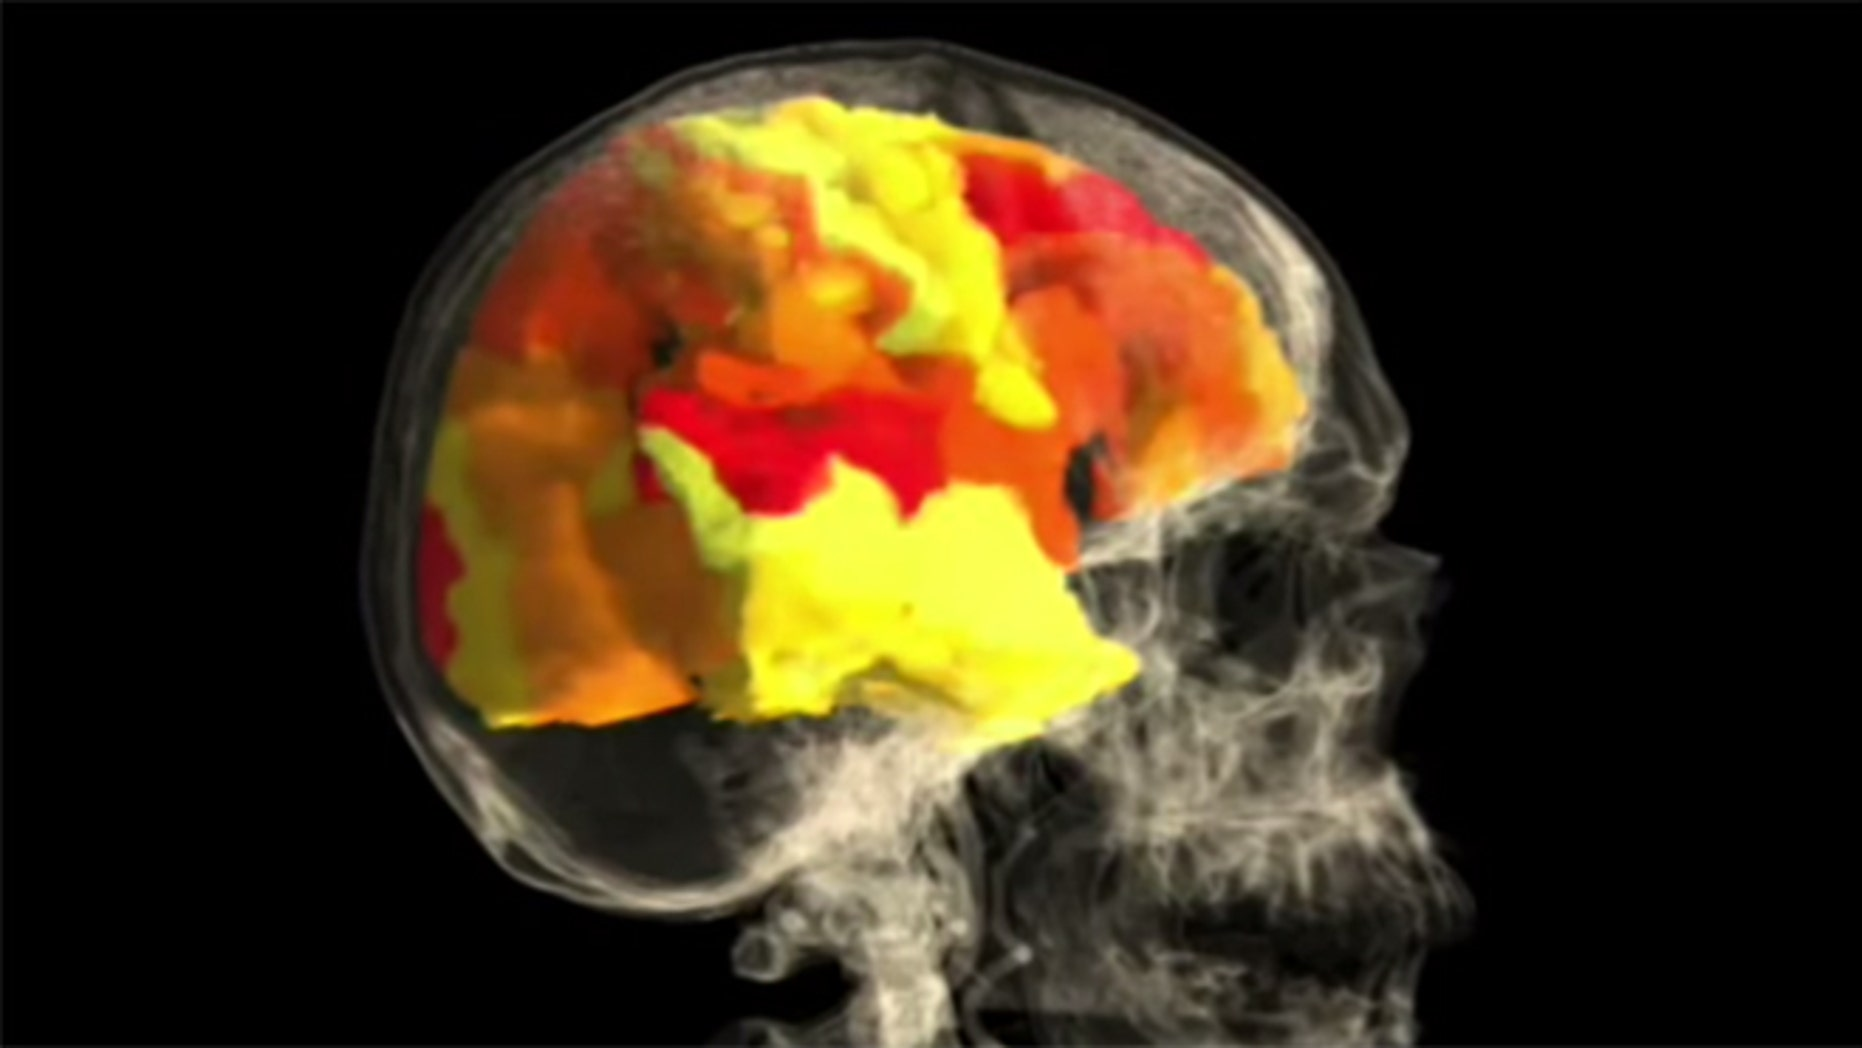 A female human brain during orgasm--the whitish-yellow portions signify highest activity. (Image: Via YouTube)